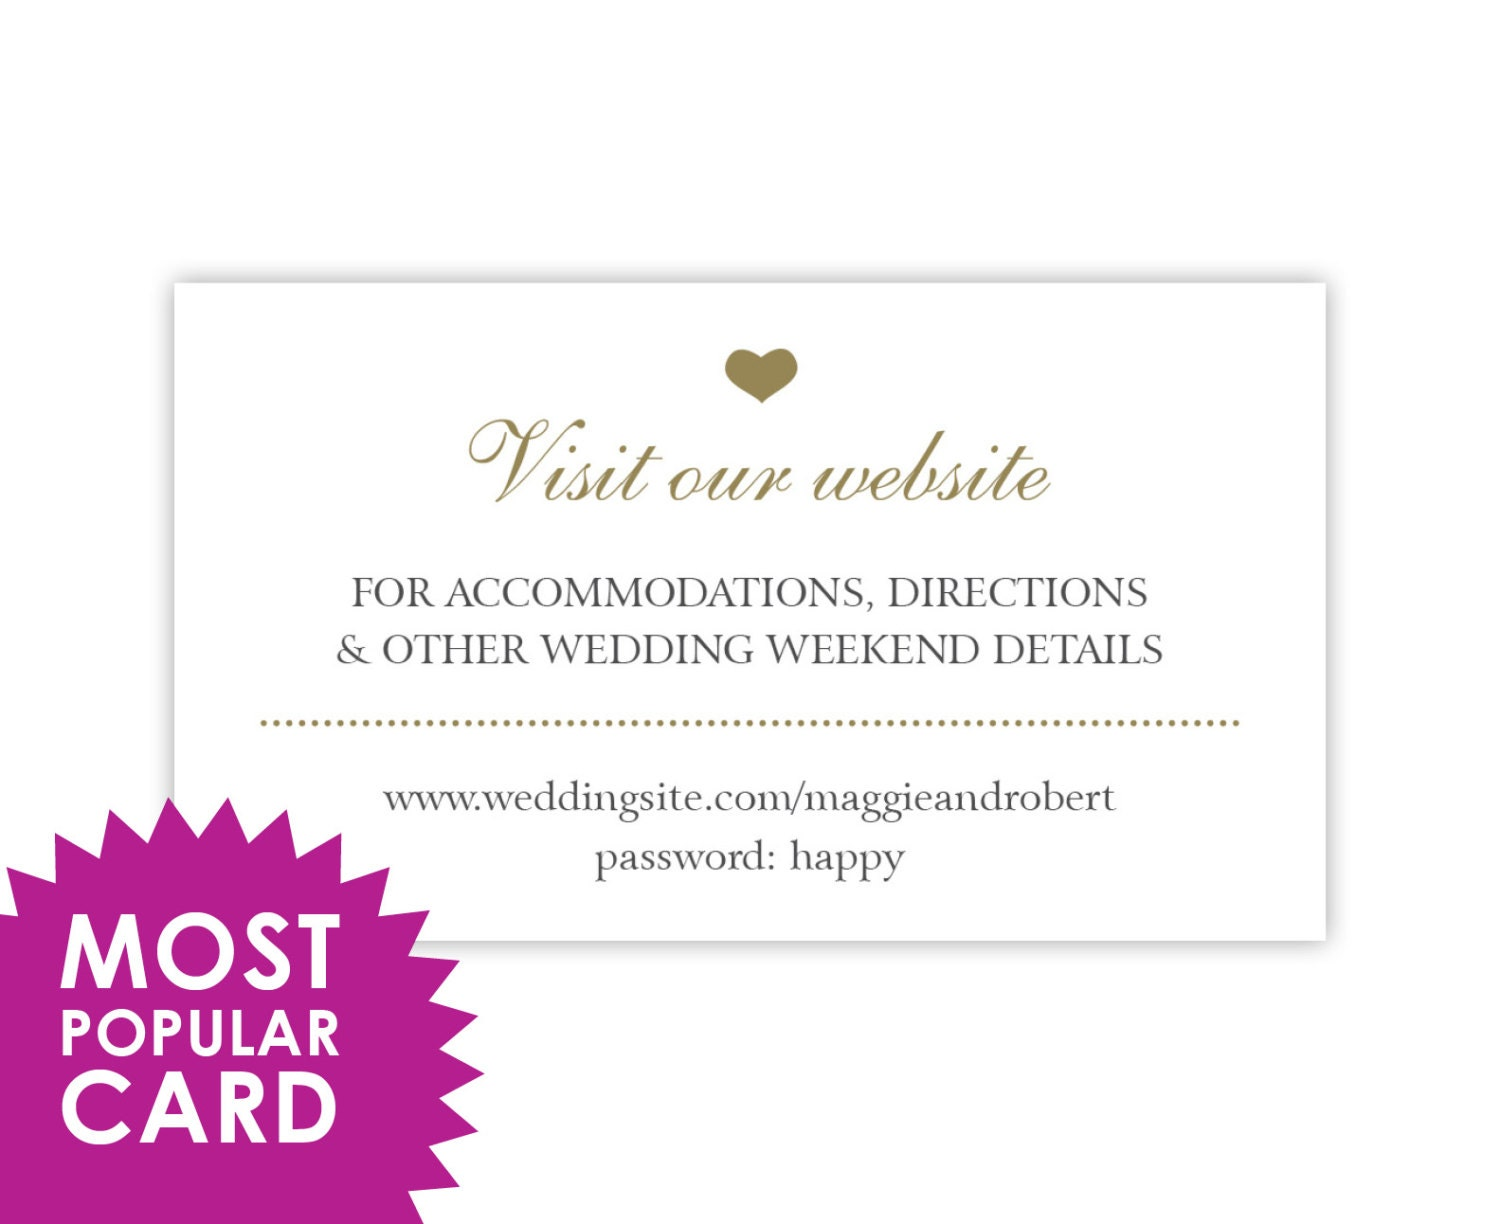 wedding registry card - Yelom.digitalsite.co